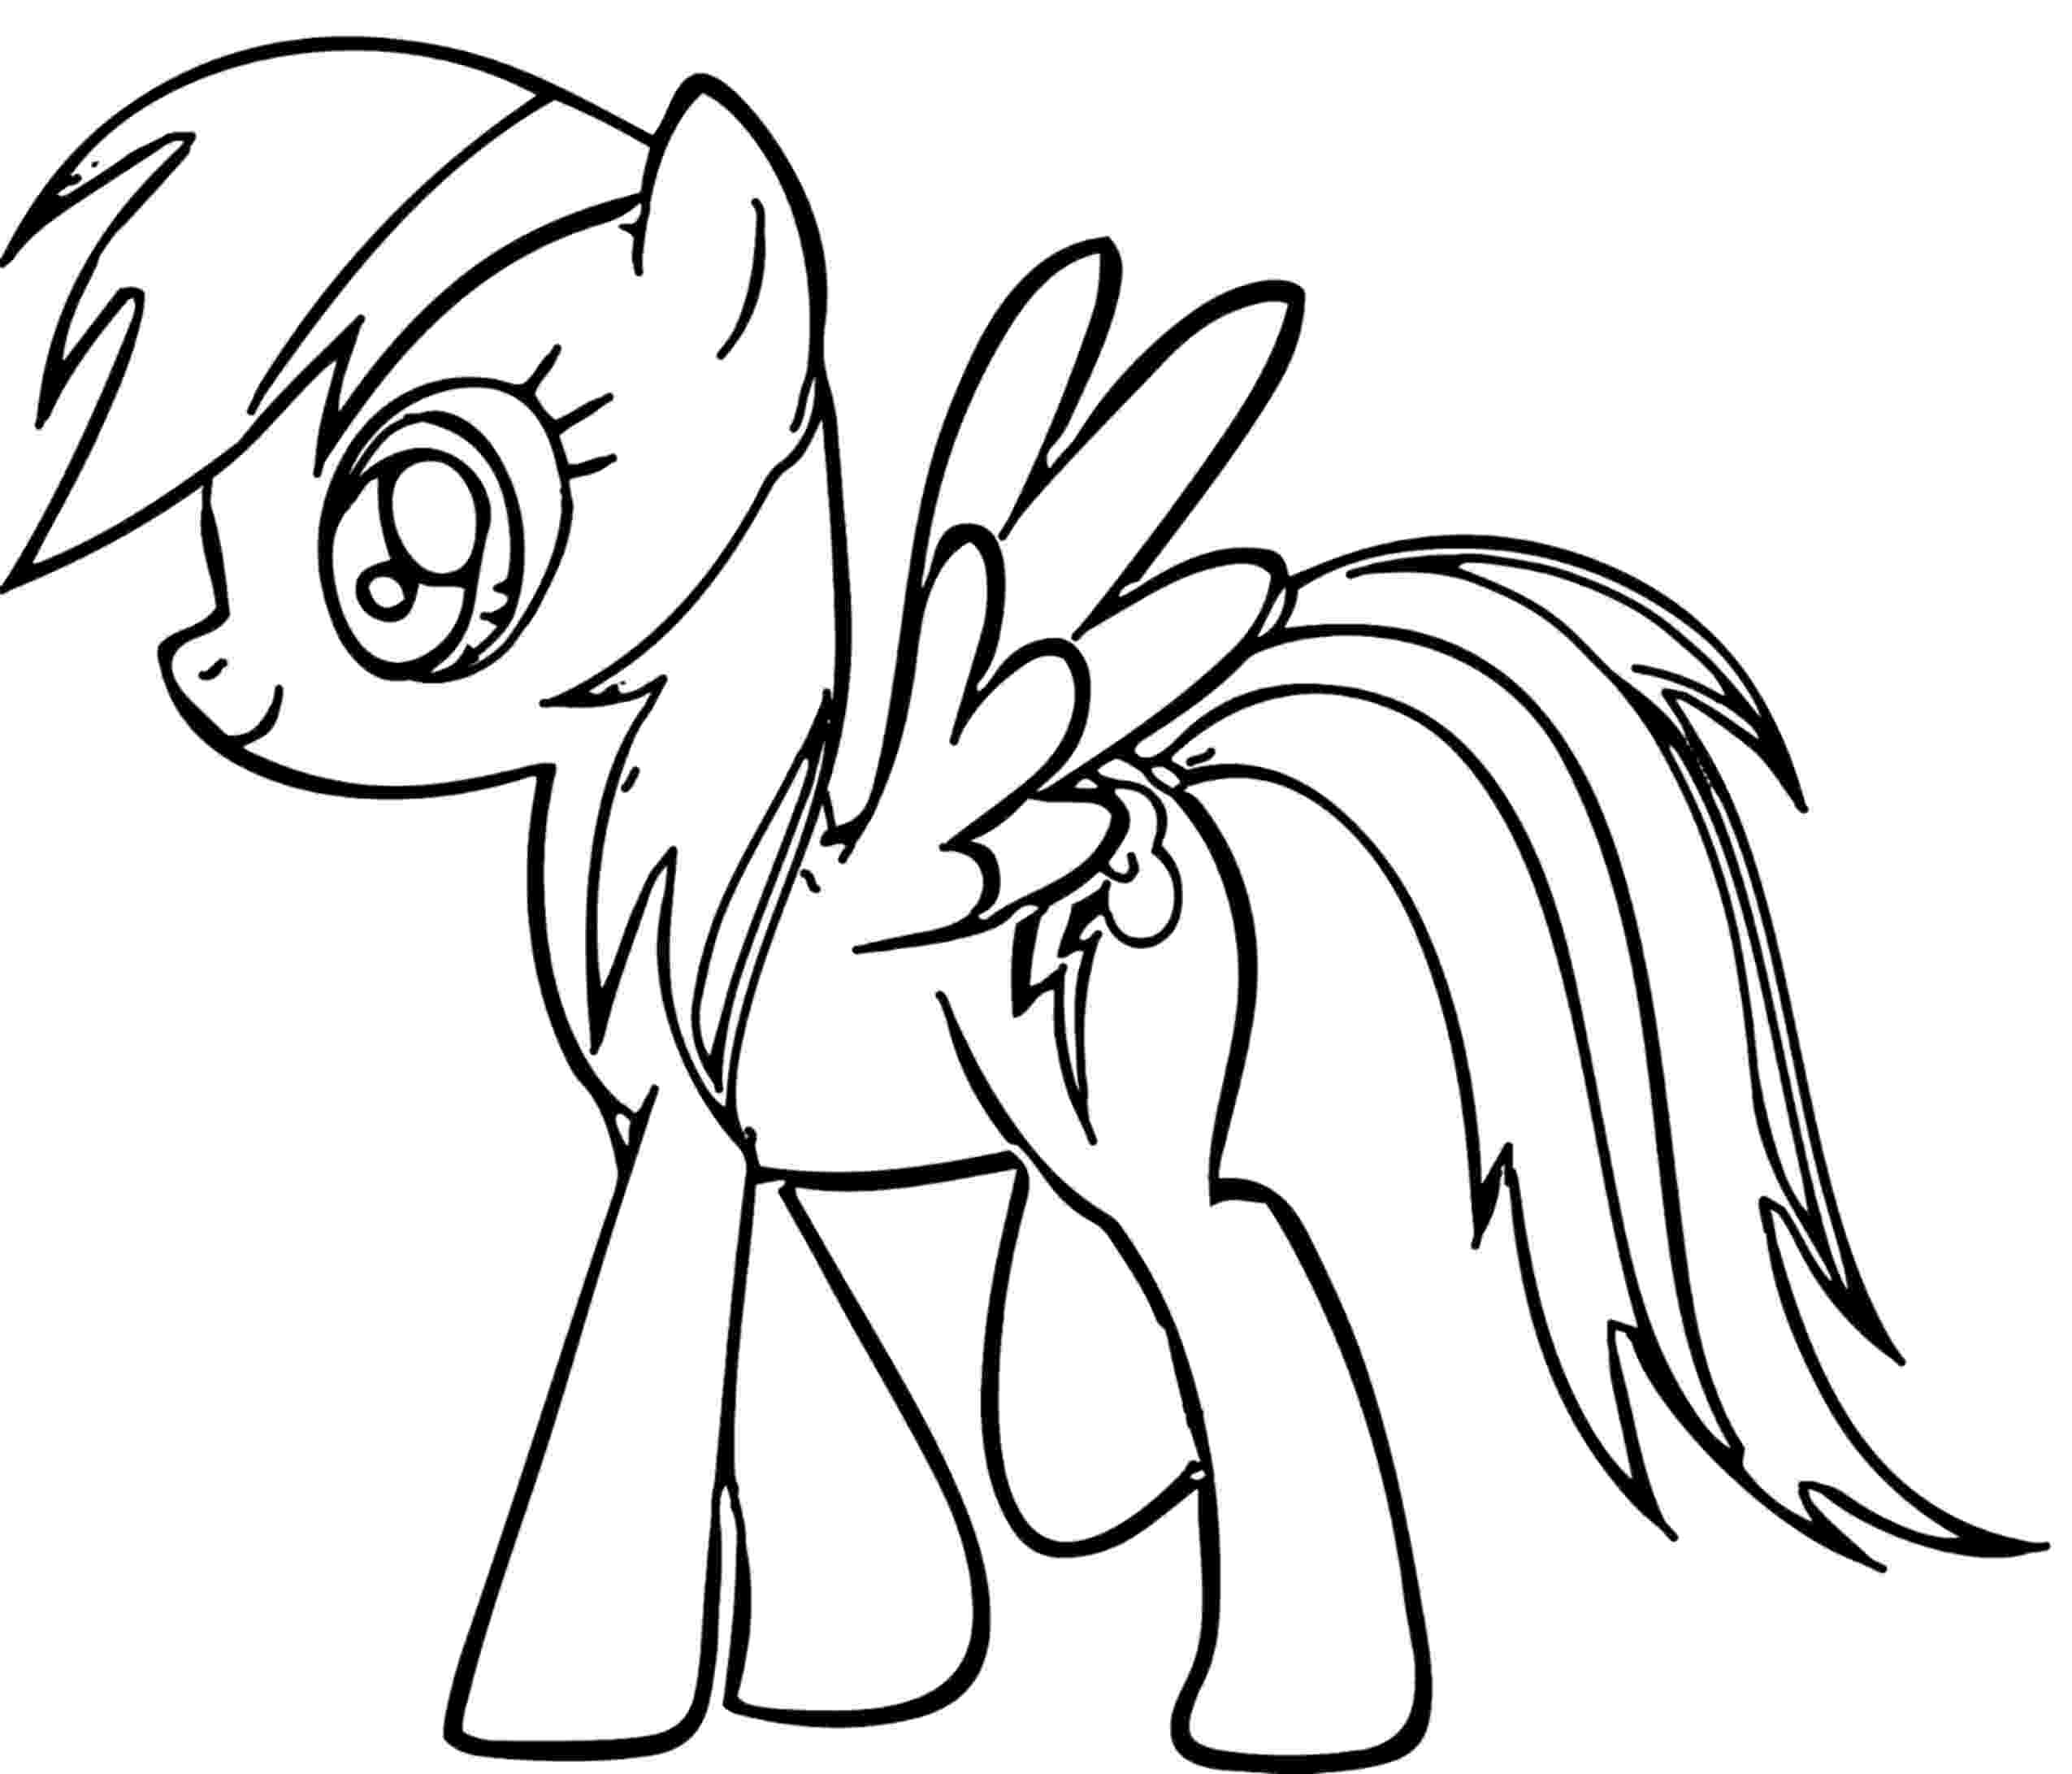 rainbow dash color page rainbow dash coloring pages best coloring pages for kids color page dash rainbow